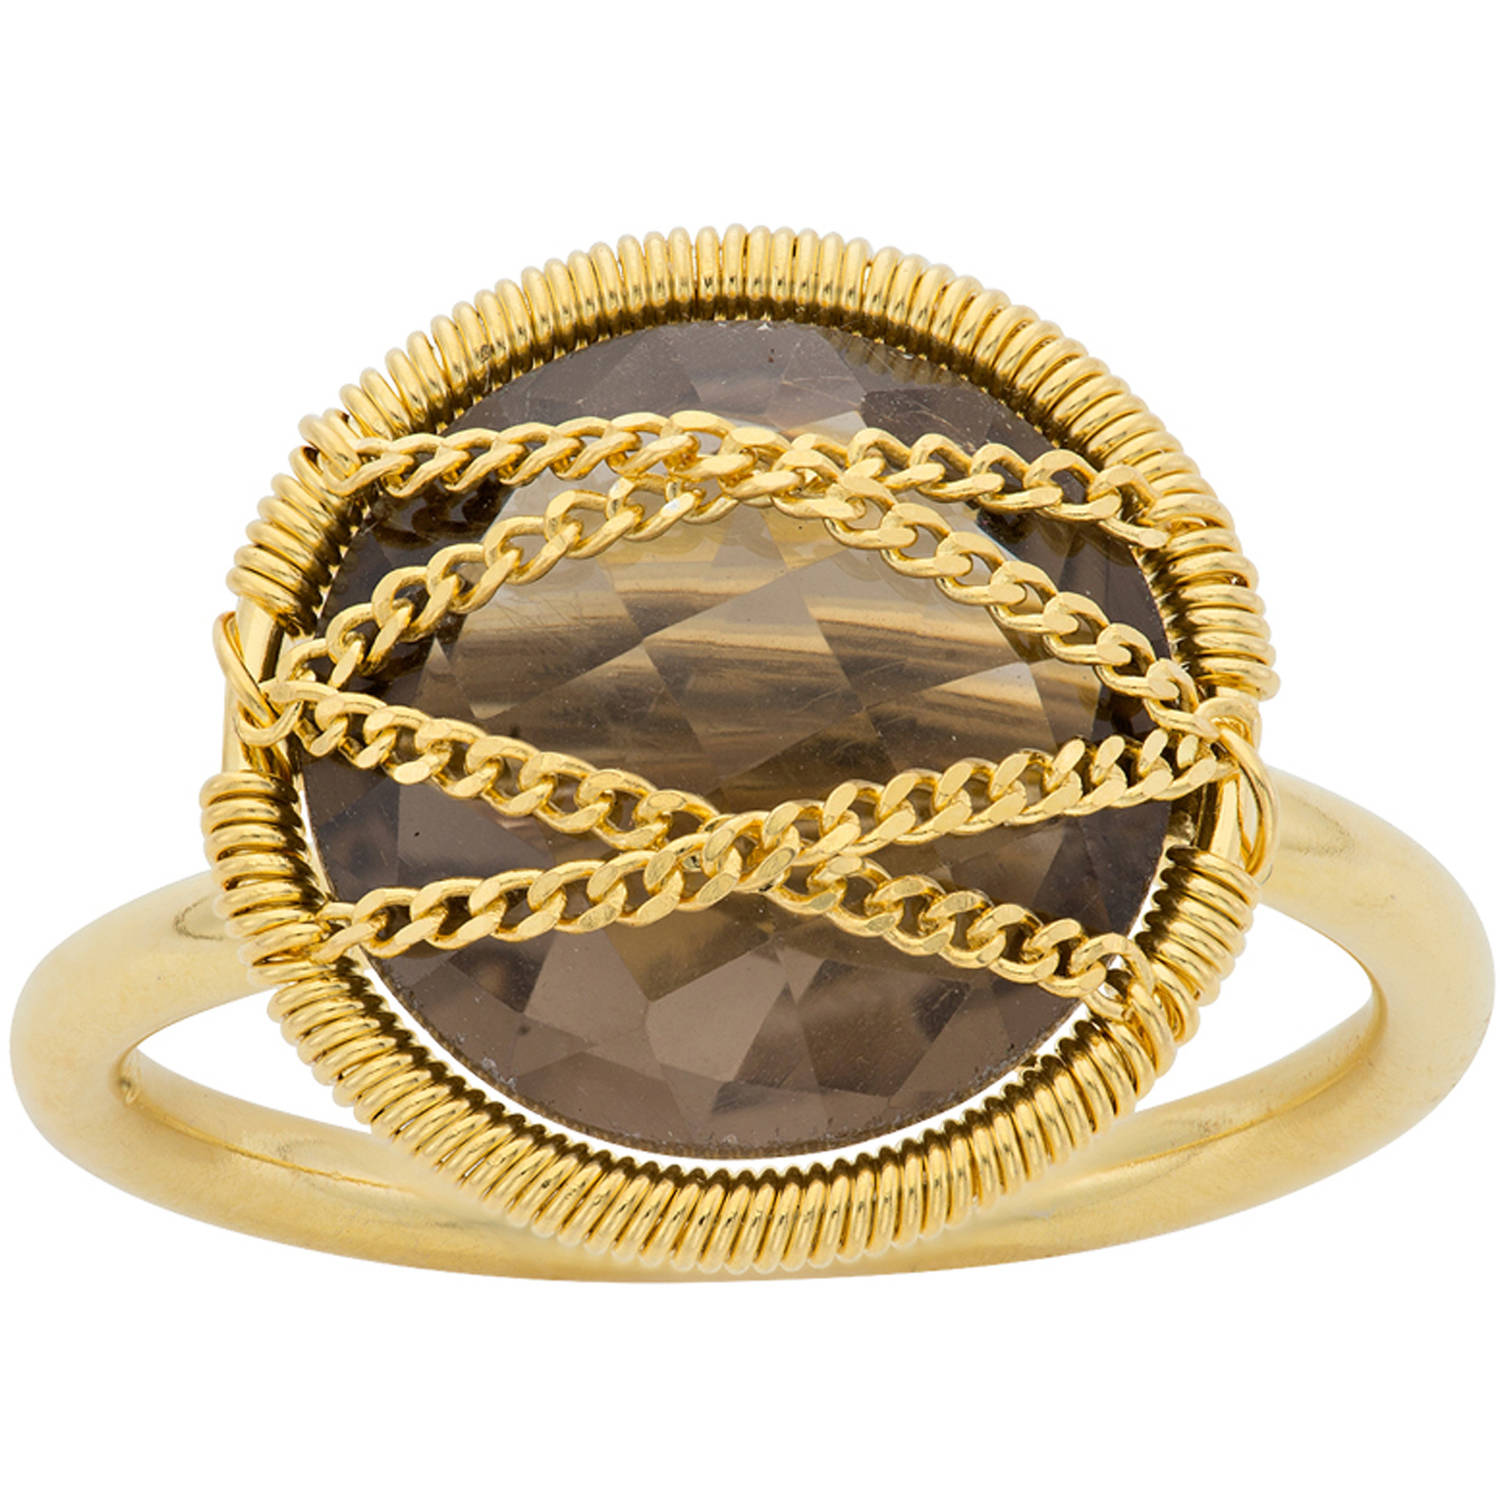 Image of 5th & Main 18kt Gold over Sterling Silver Hand-Wrapped Round Smokey Quartz Stone Ring